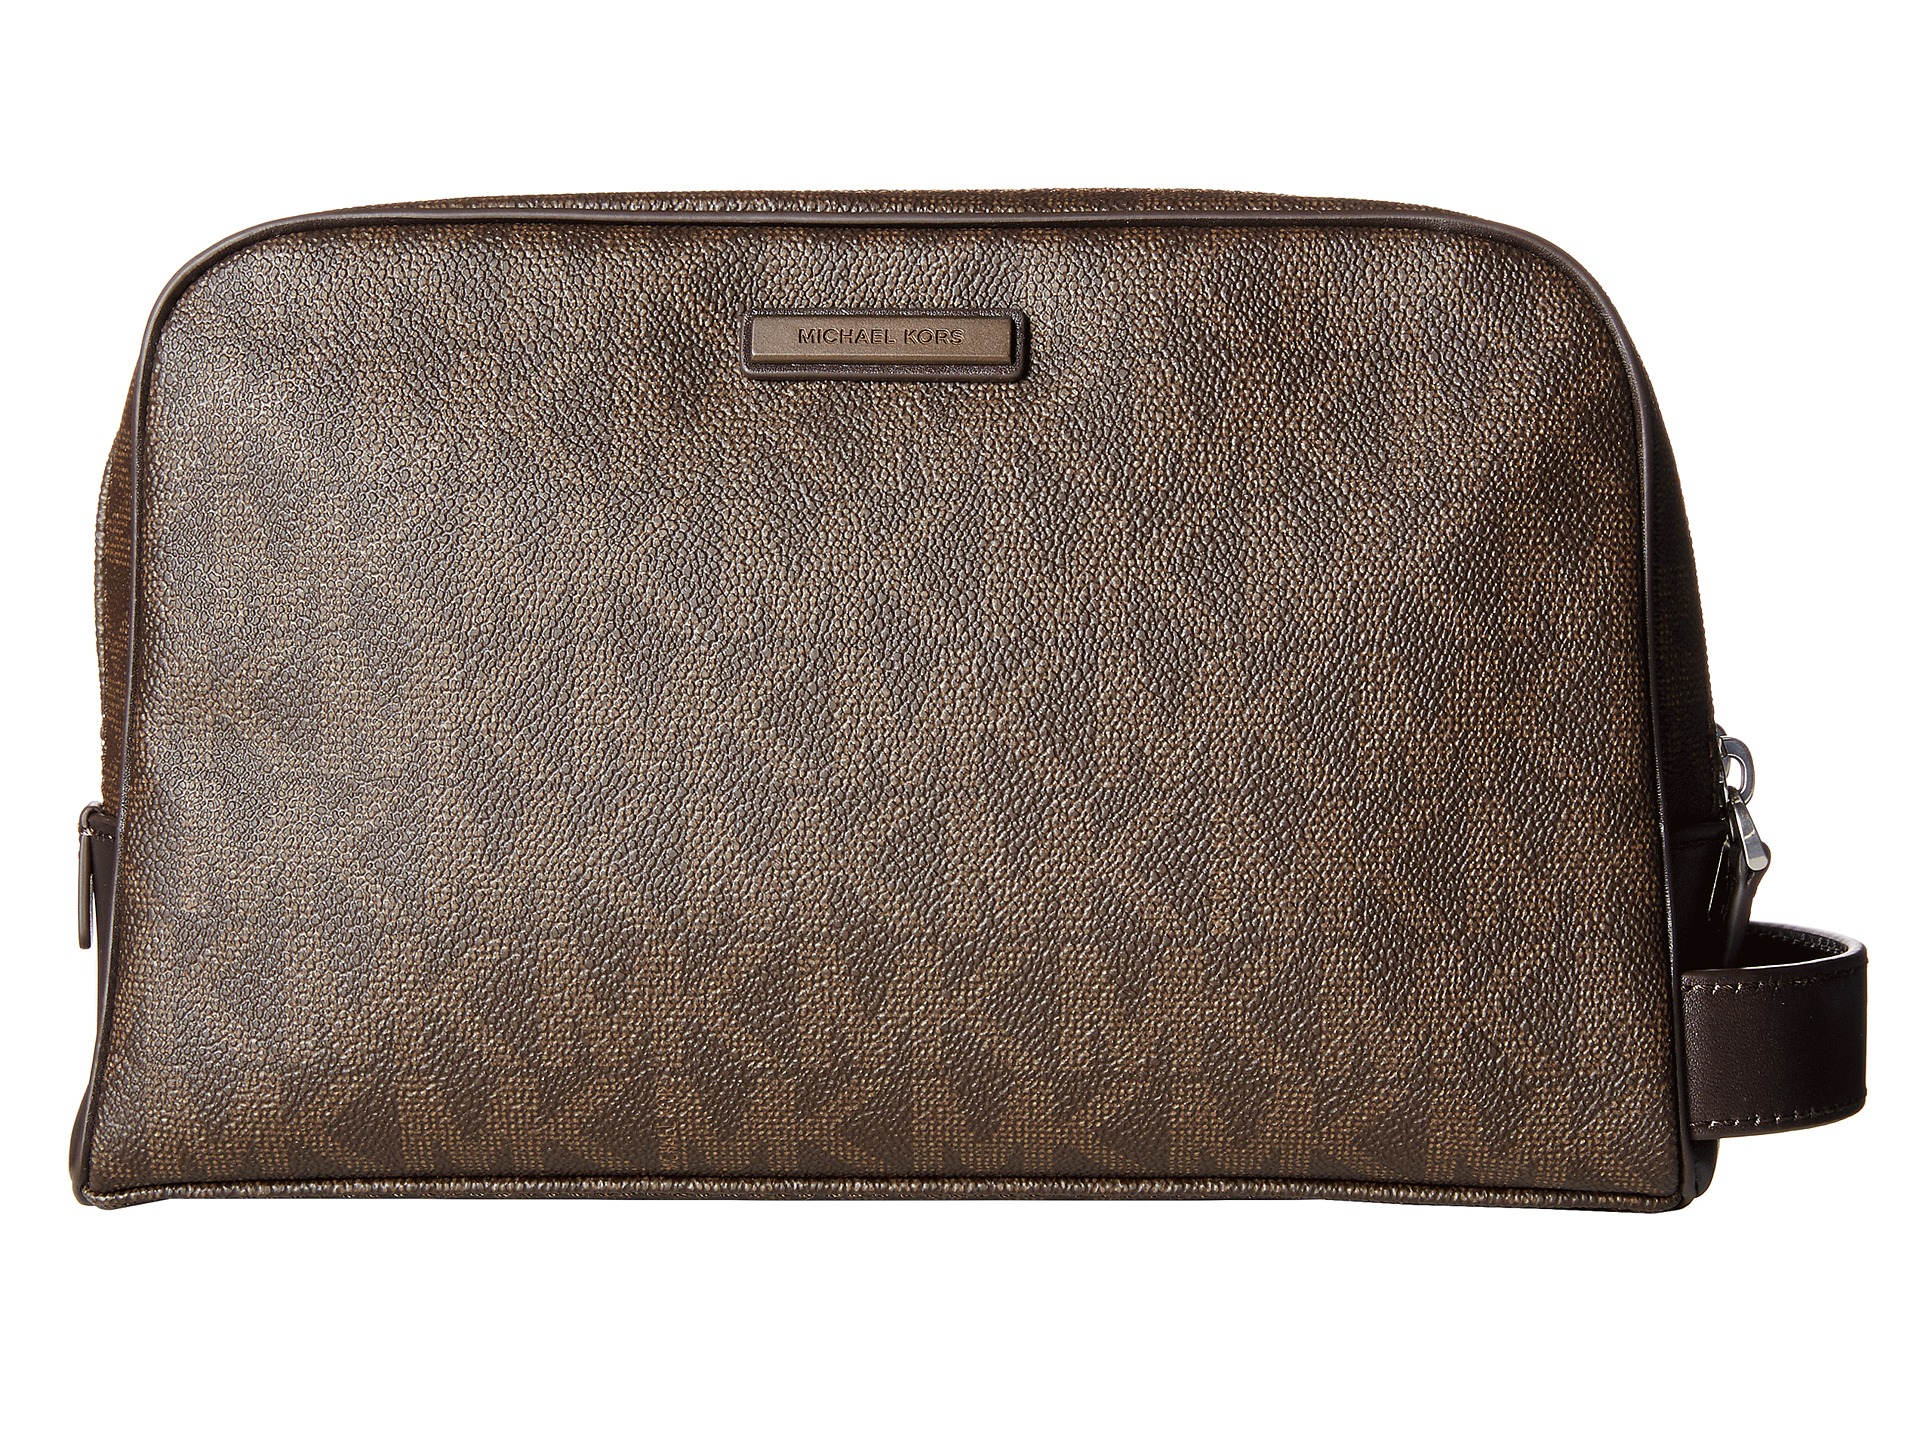 a90e54ac388a6 Lyst - Michael Kors Jet Set Travel Double Zip Toiletry Kit in Brown ...